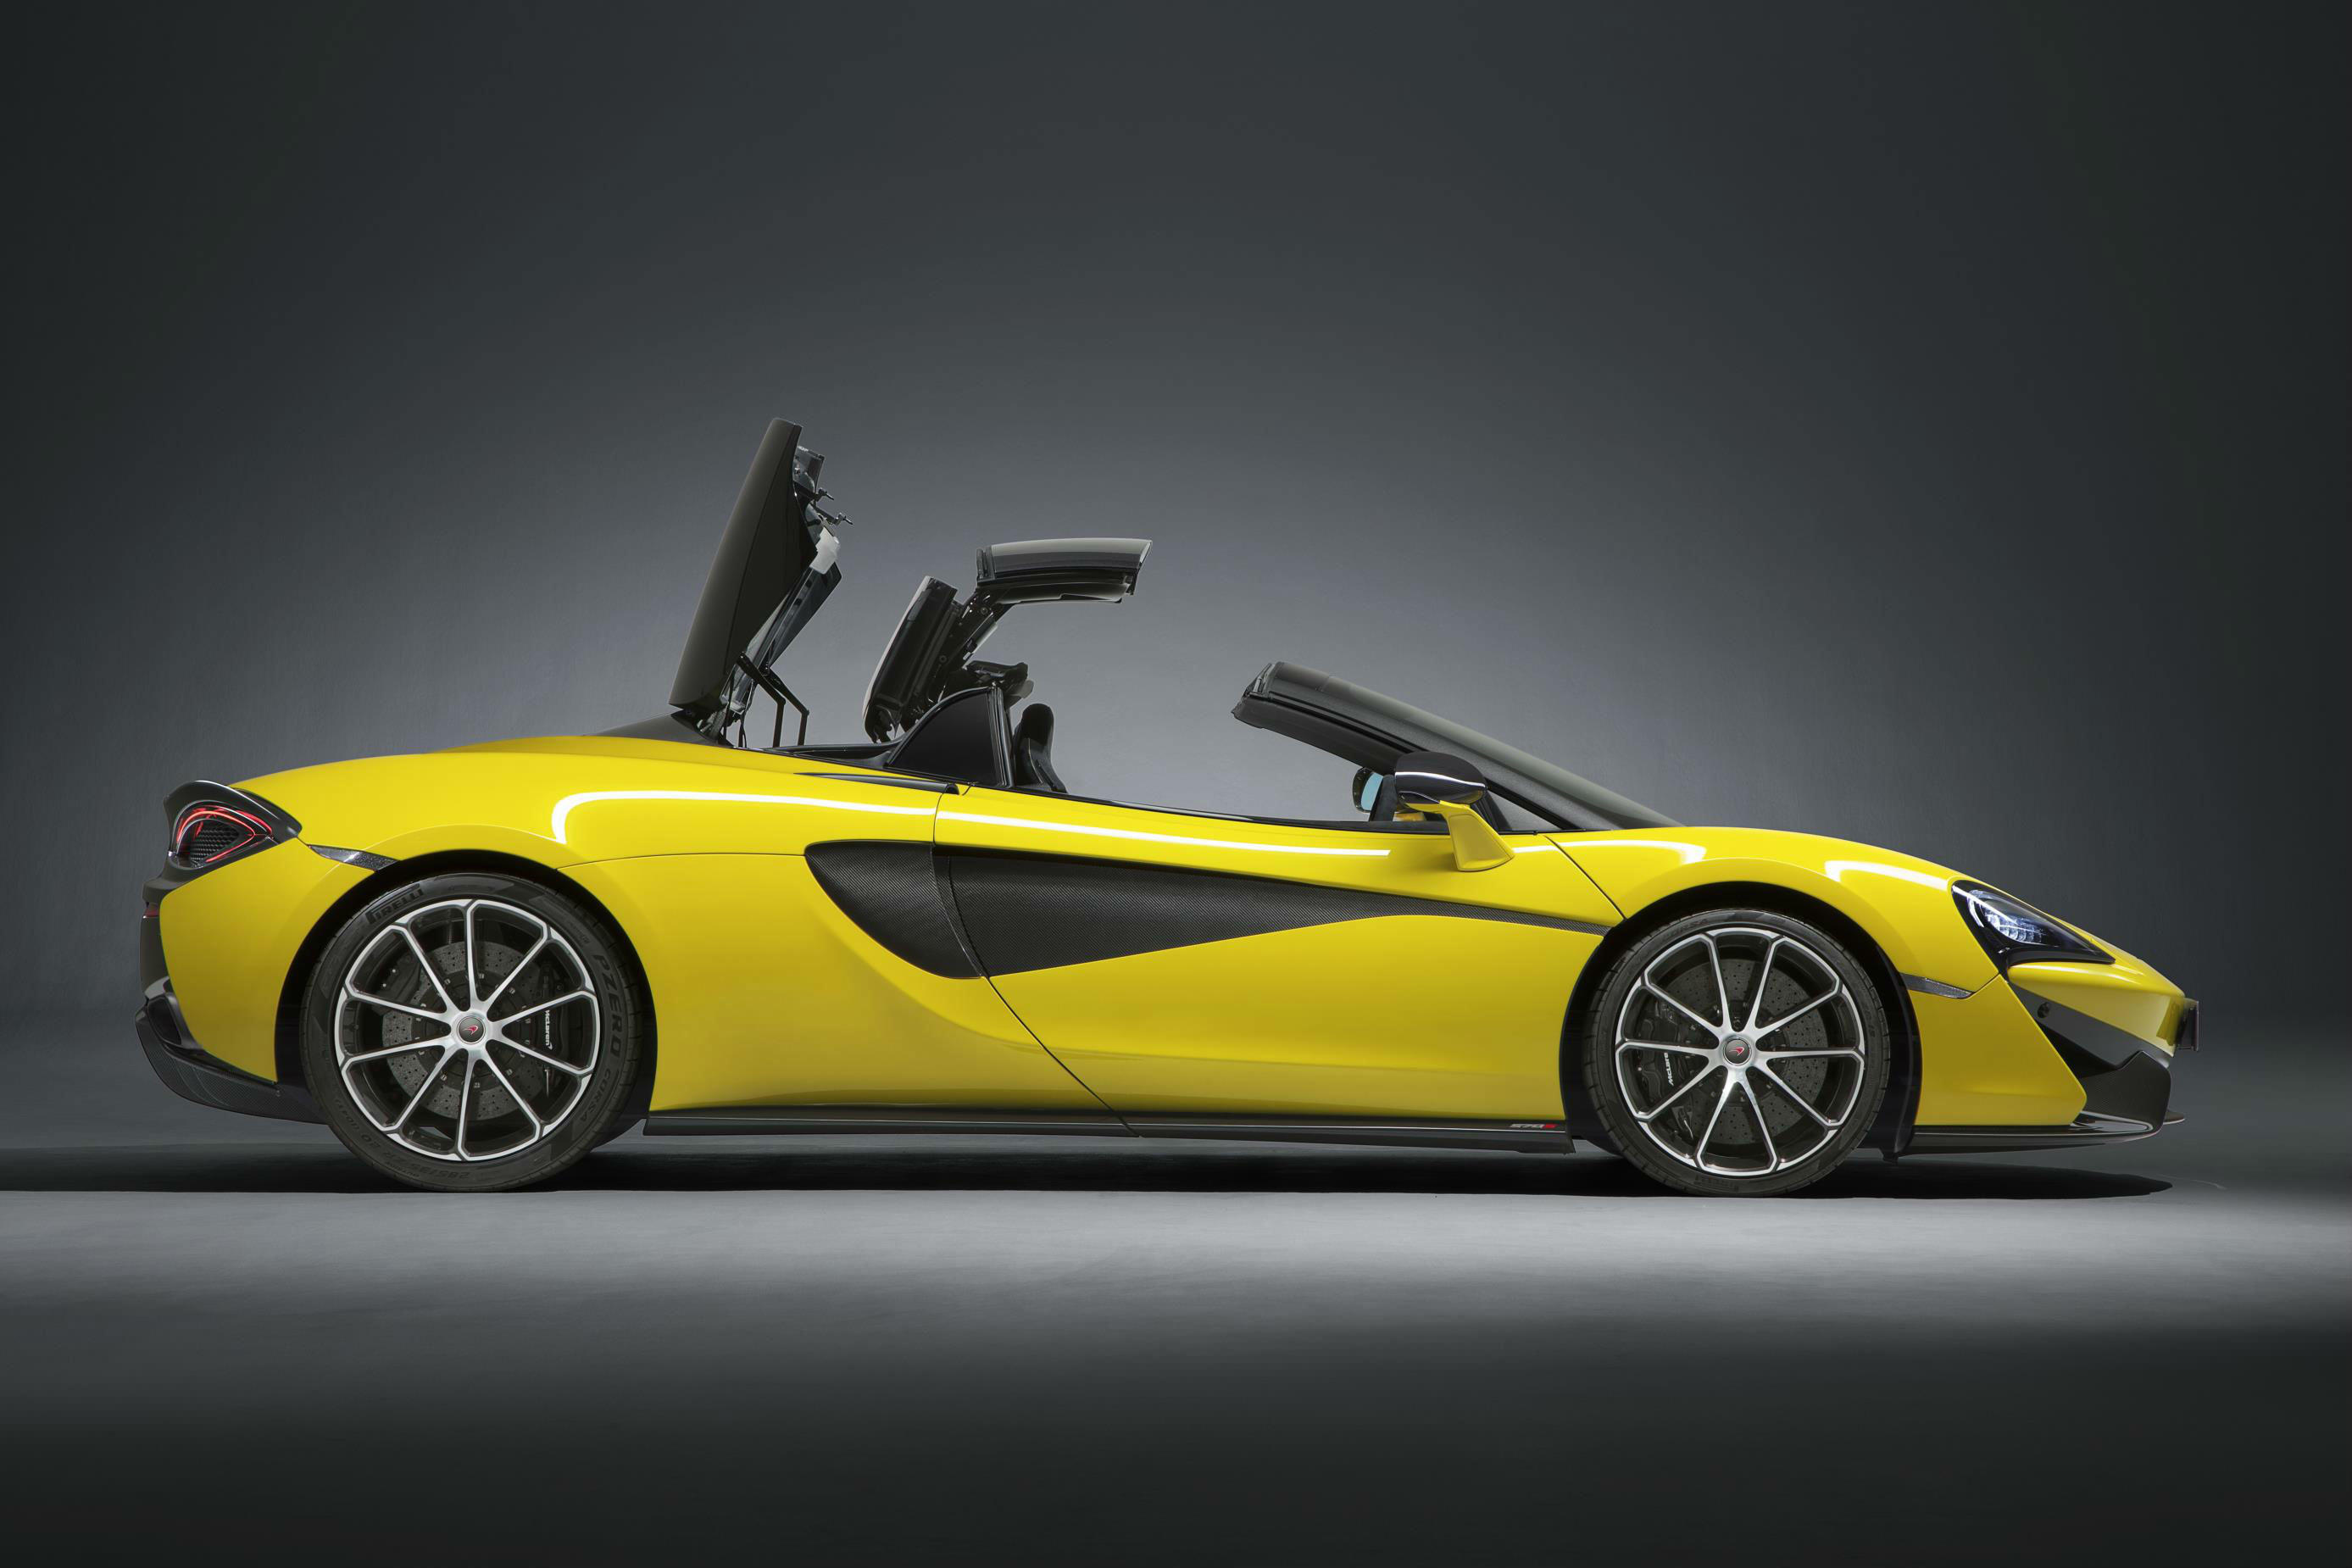 image of a yellow mclaren 570s spider convertible car